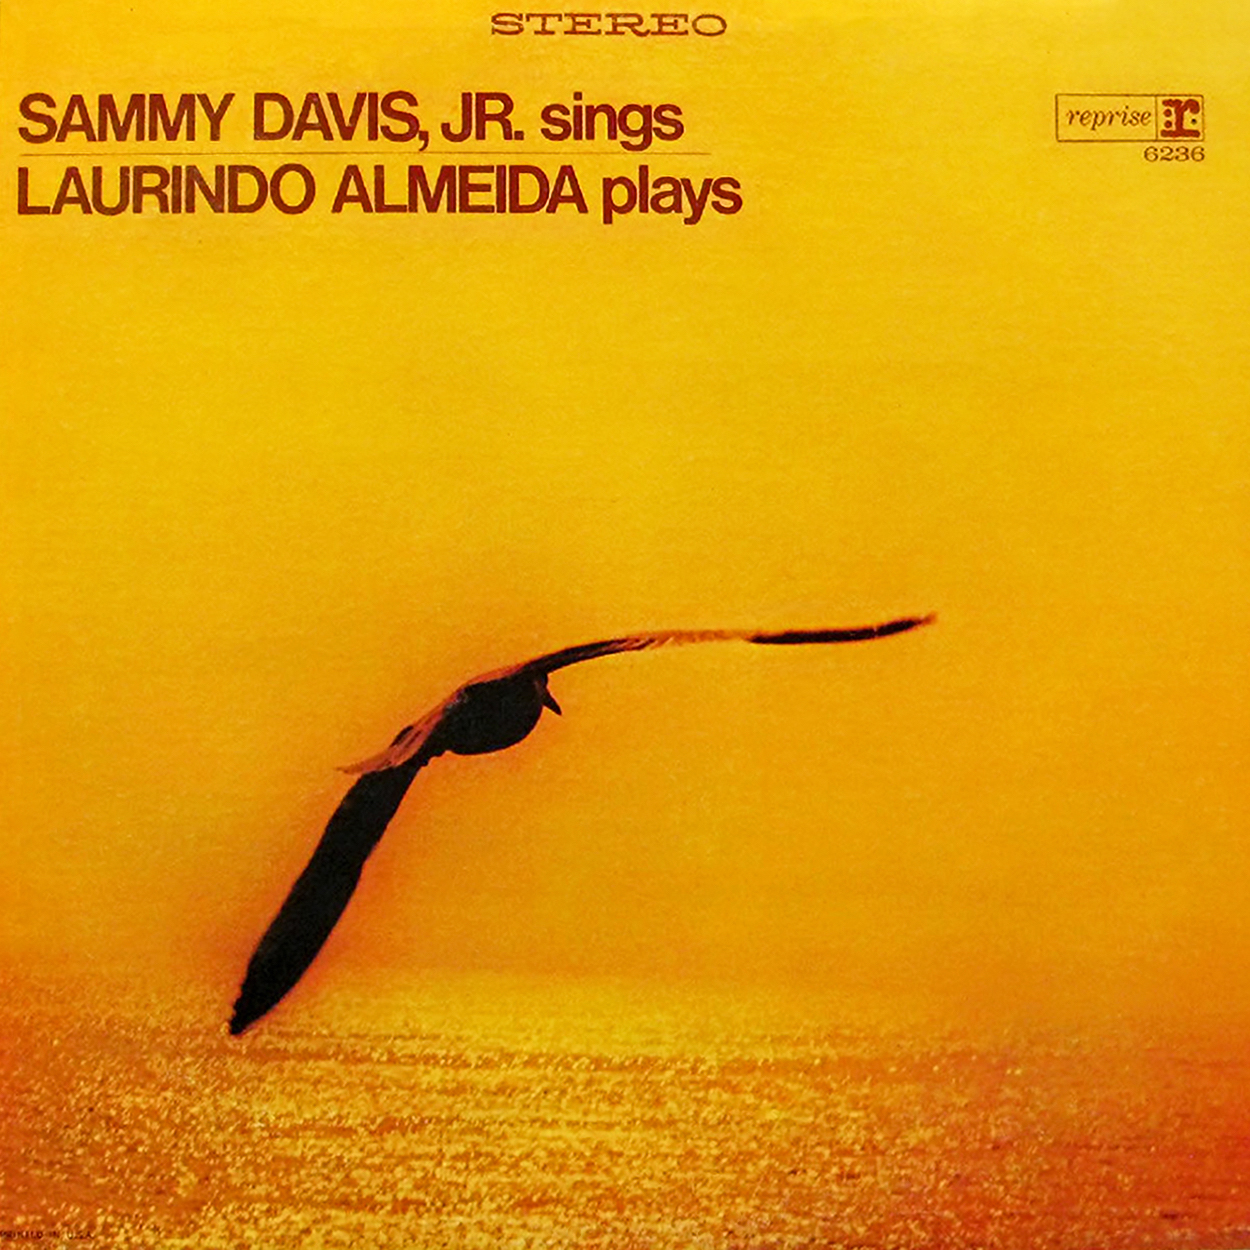 Sammy Davis, Jr. Sings / Laurindo Almeida Plays LP